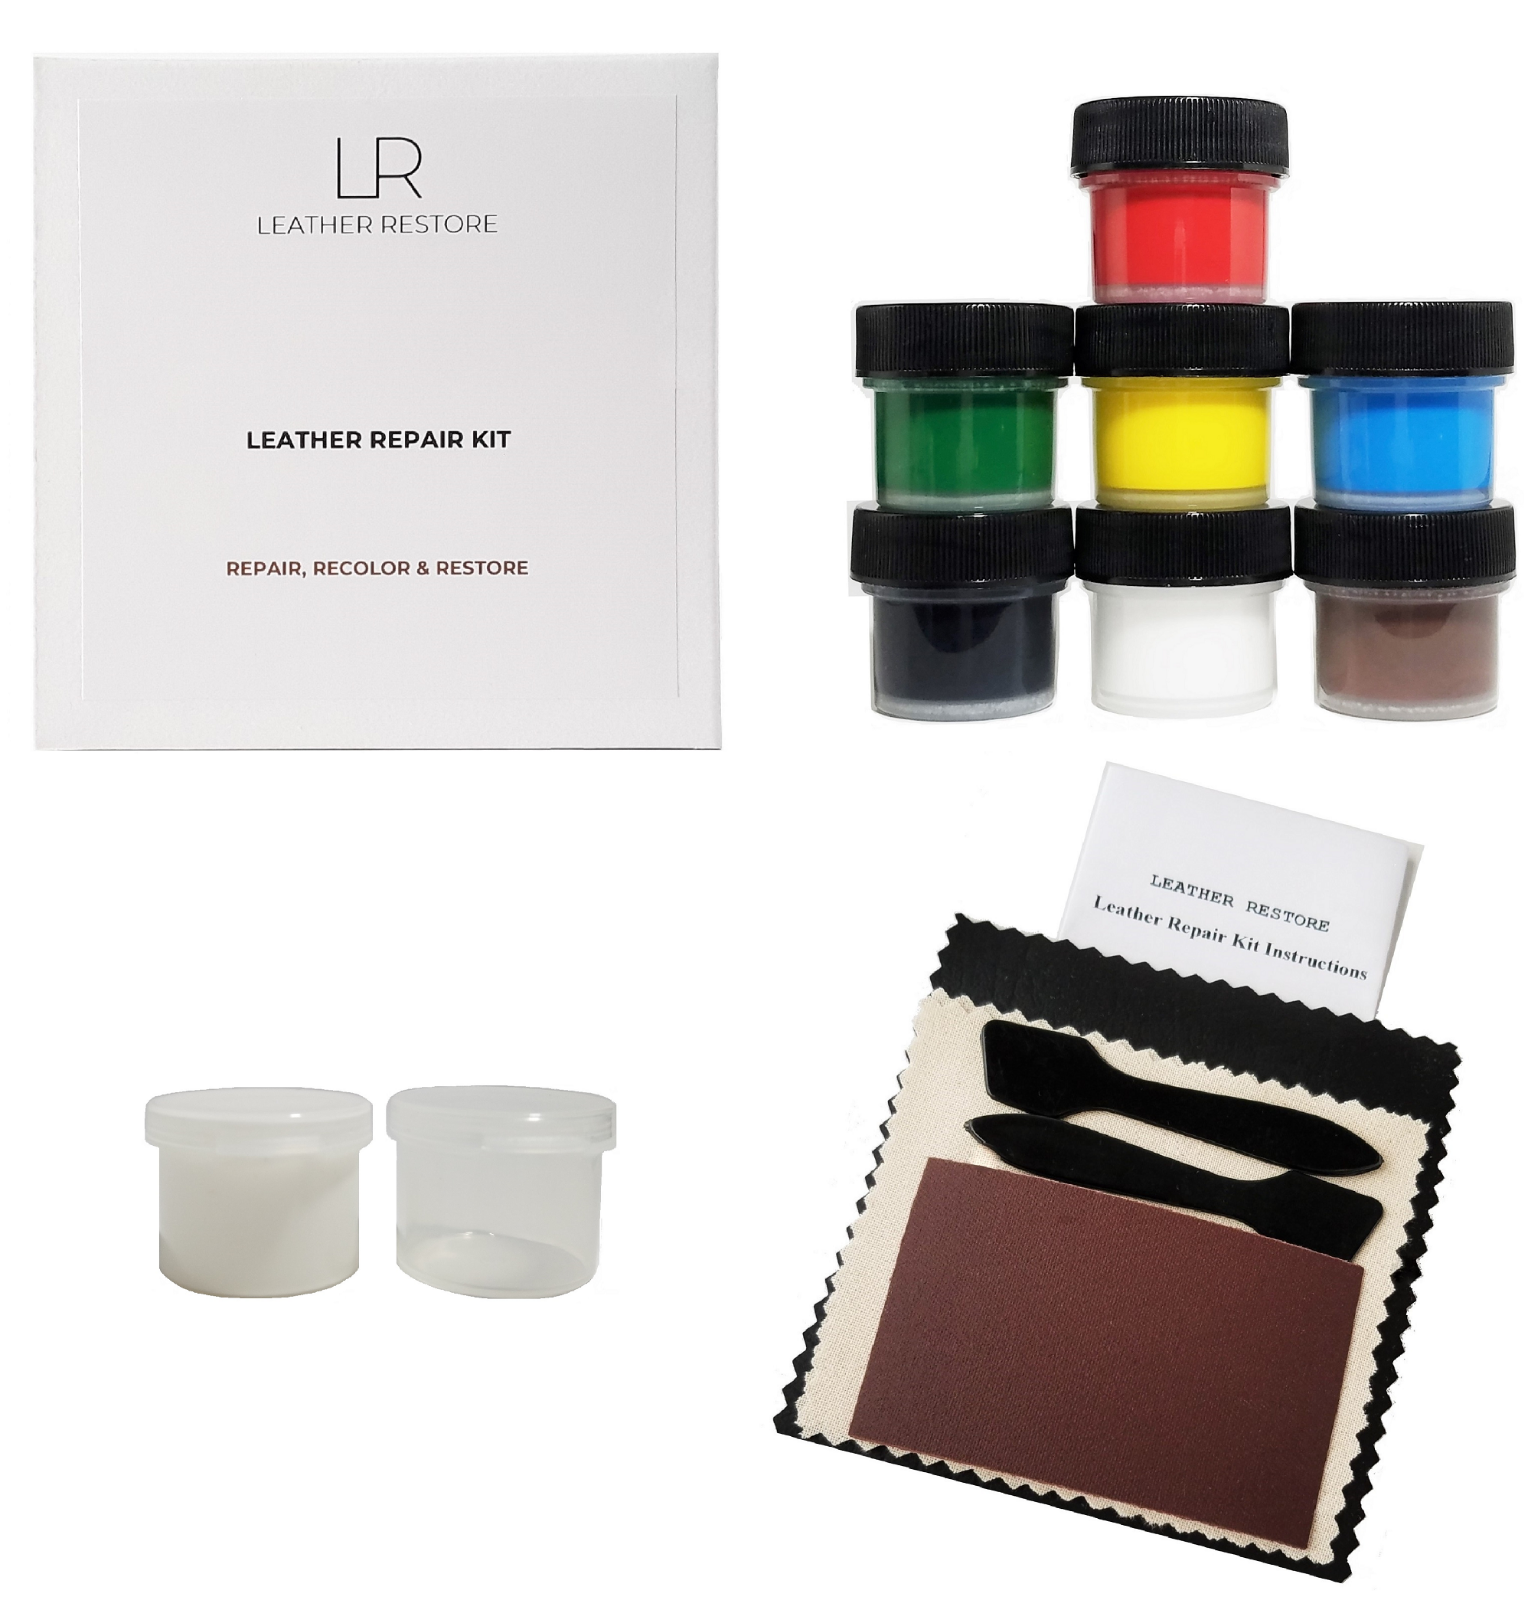 Leather Vinyl Repair Kit For Couches, Furniture, Boots, Shoe